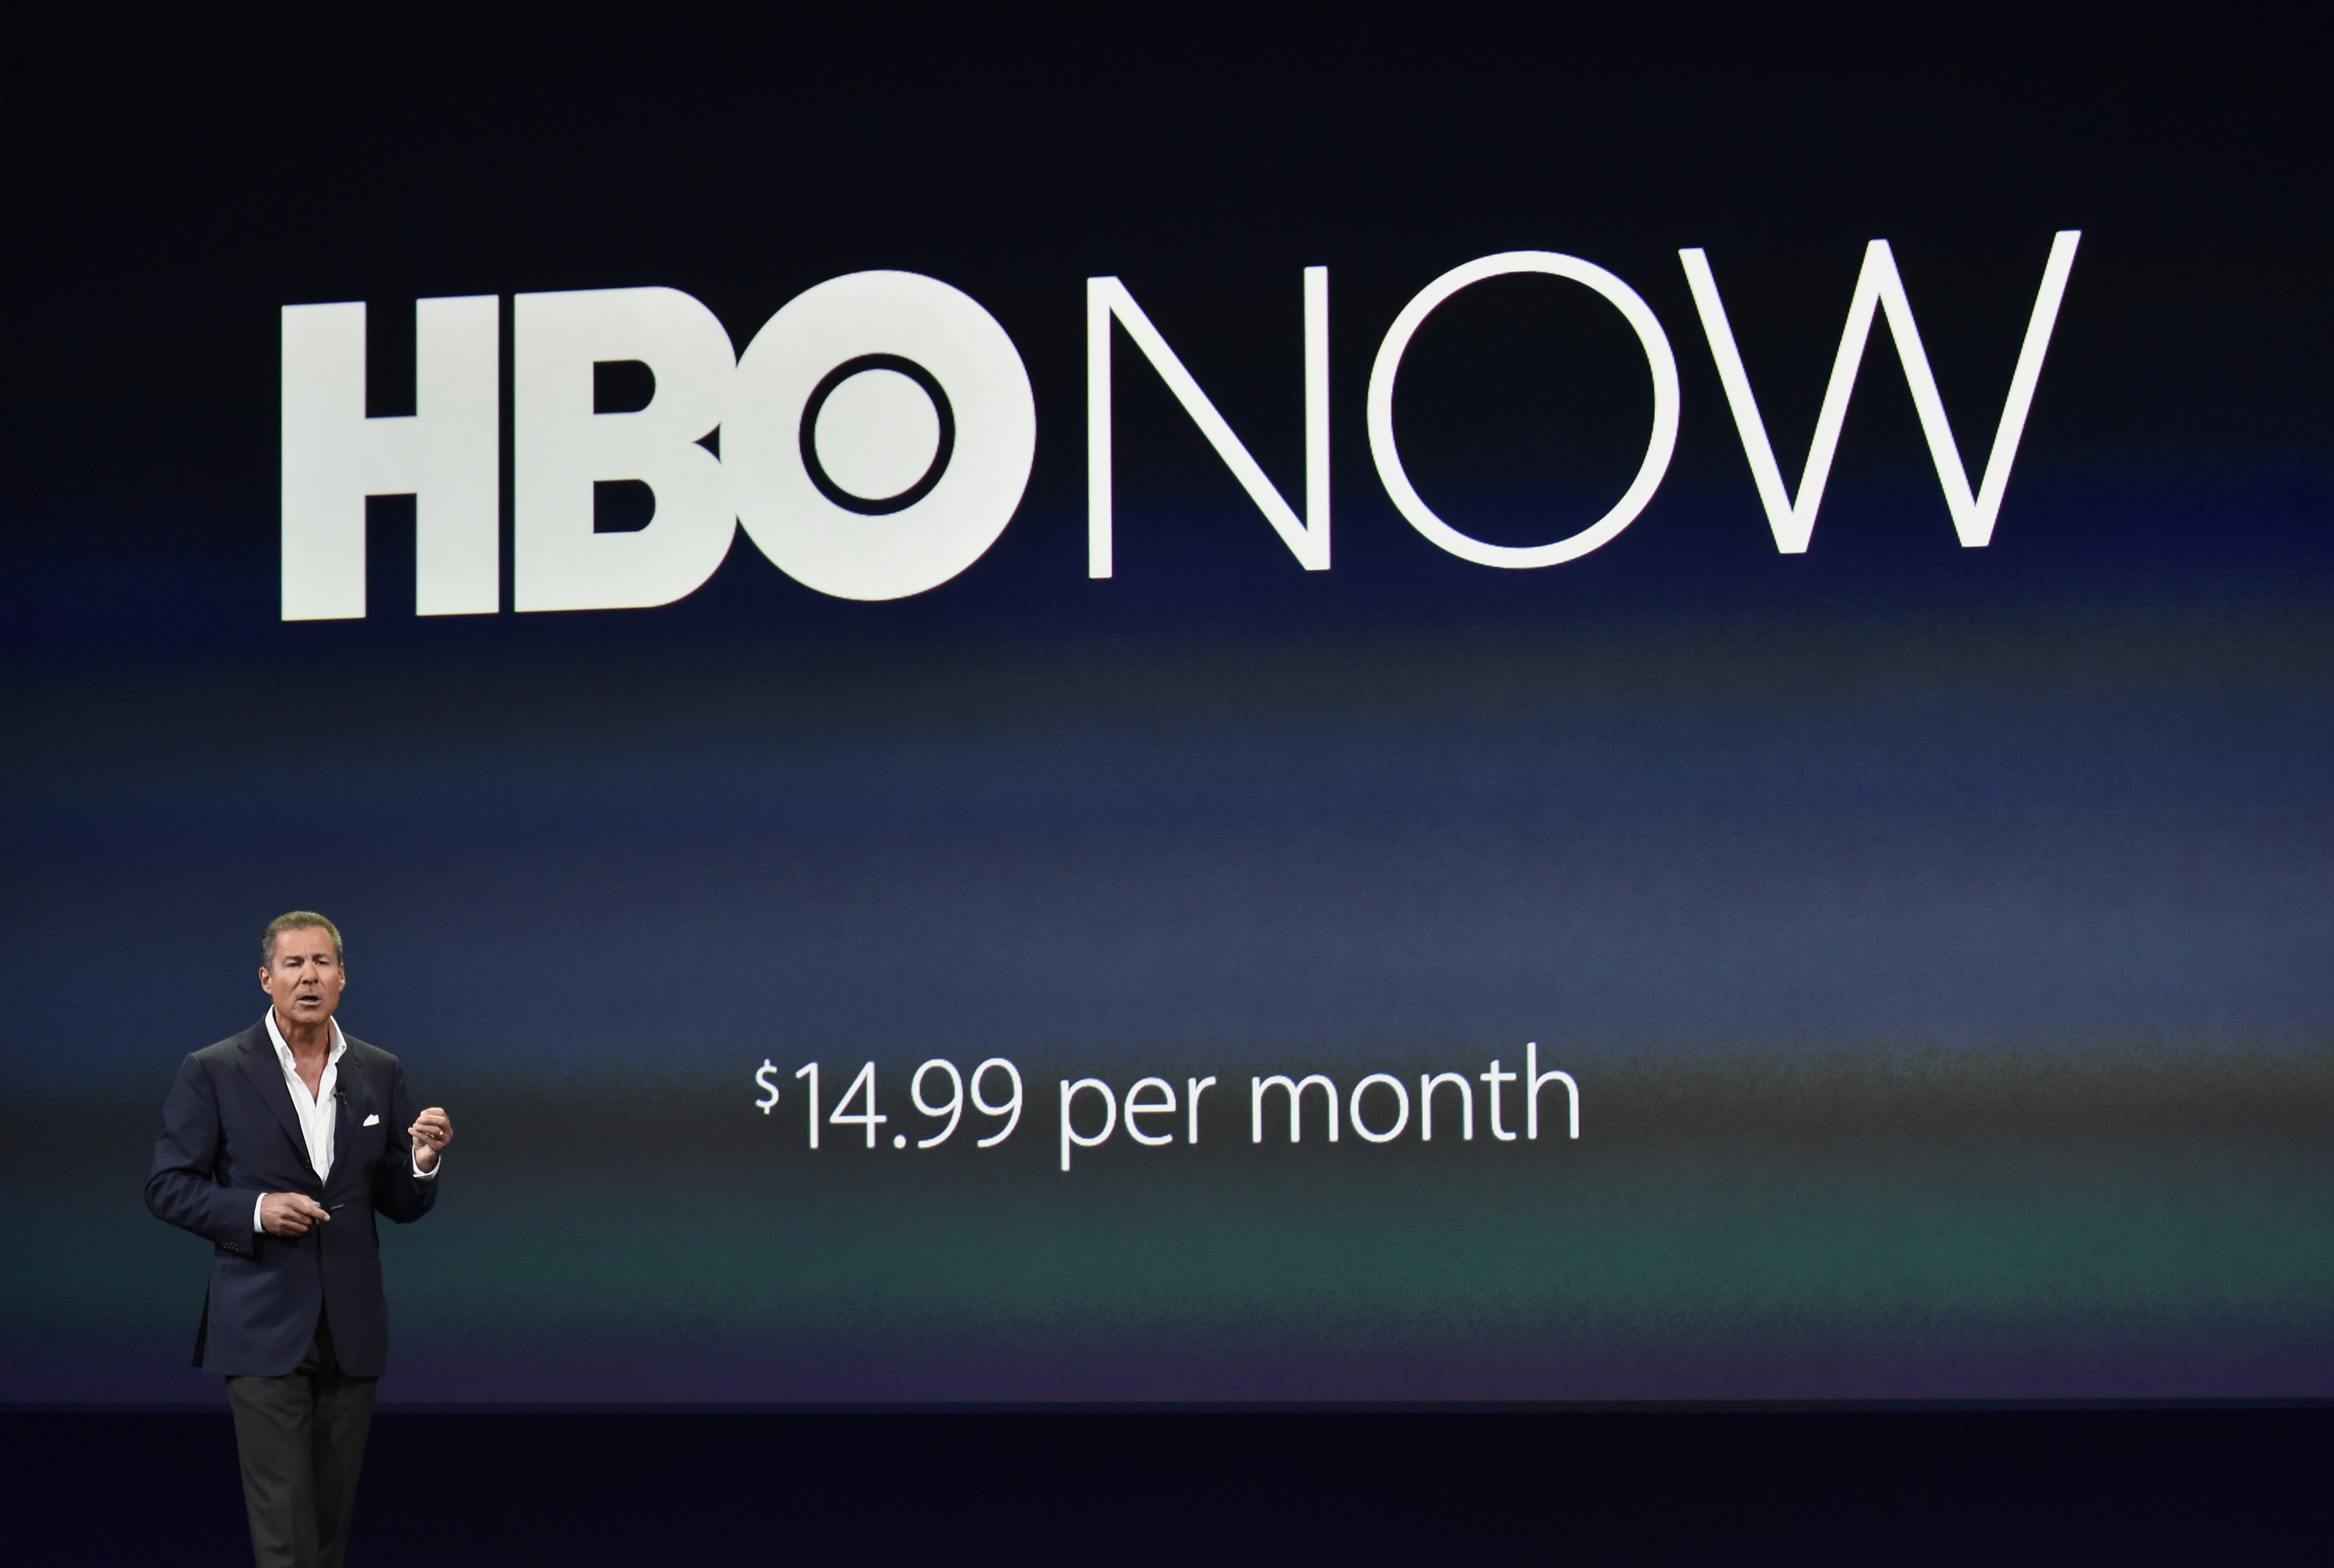 Richard Plepler, chief executive officer of Home Box Office Inc. (HBO), speaks during the Apple Inc. Spring Forward event in San Francisco, California, U.S., on Monday, March 9, 2015.